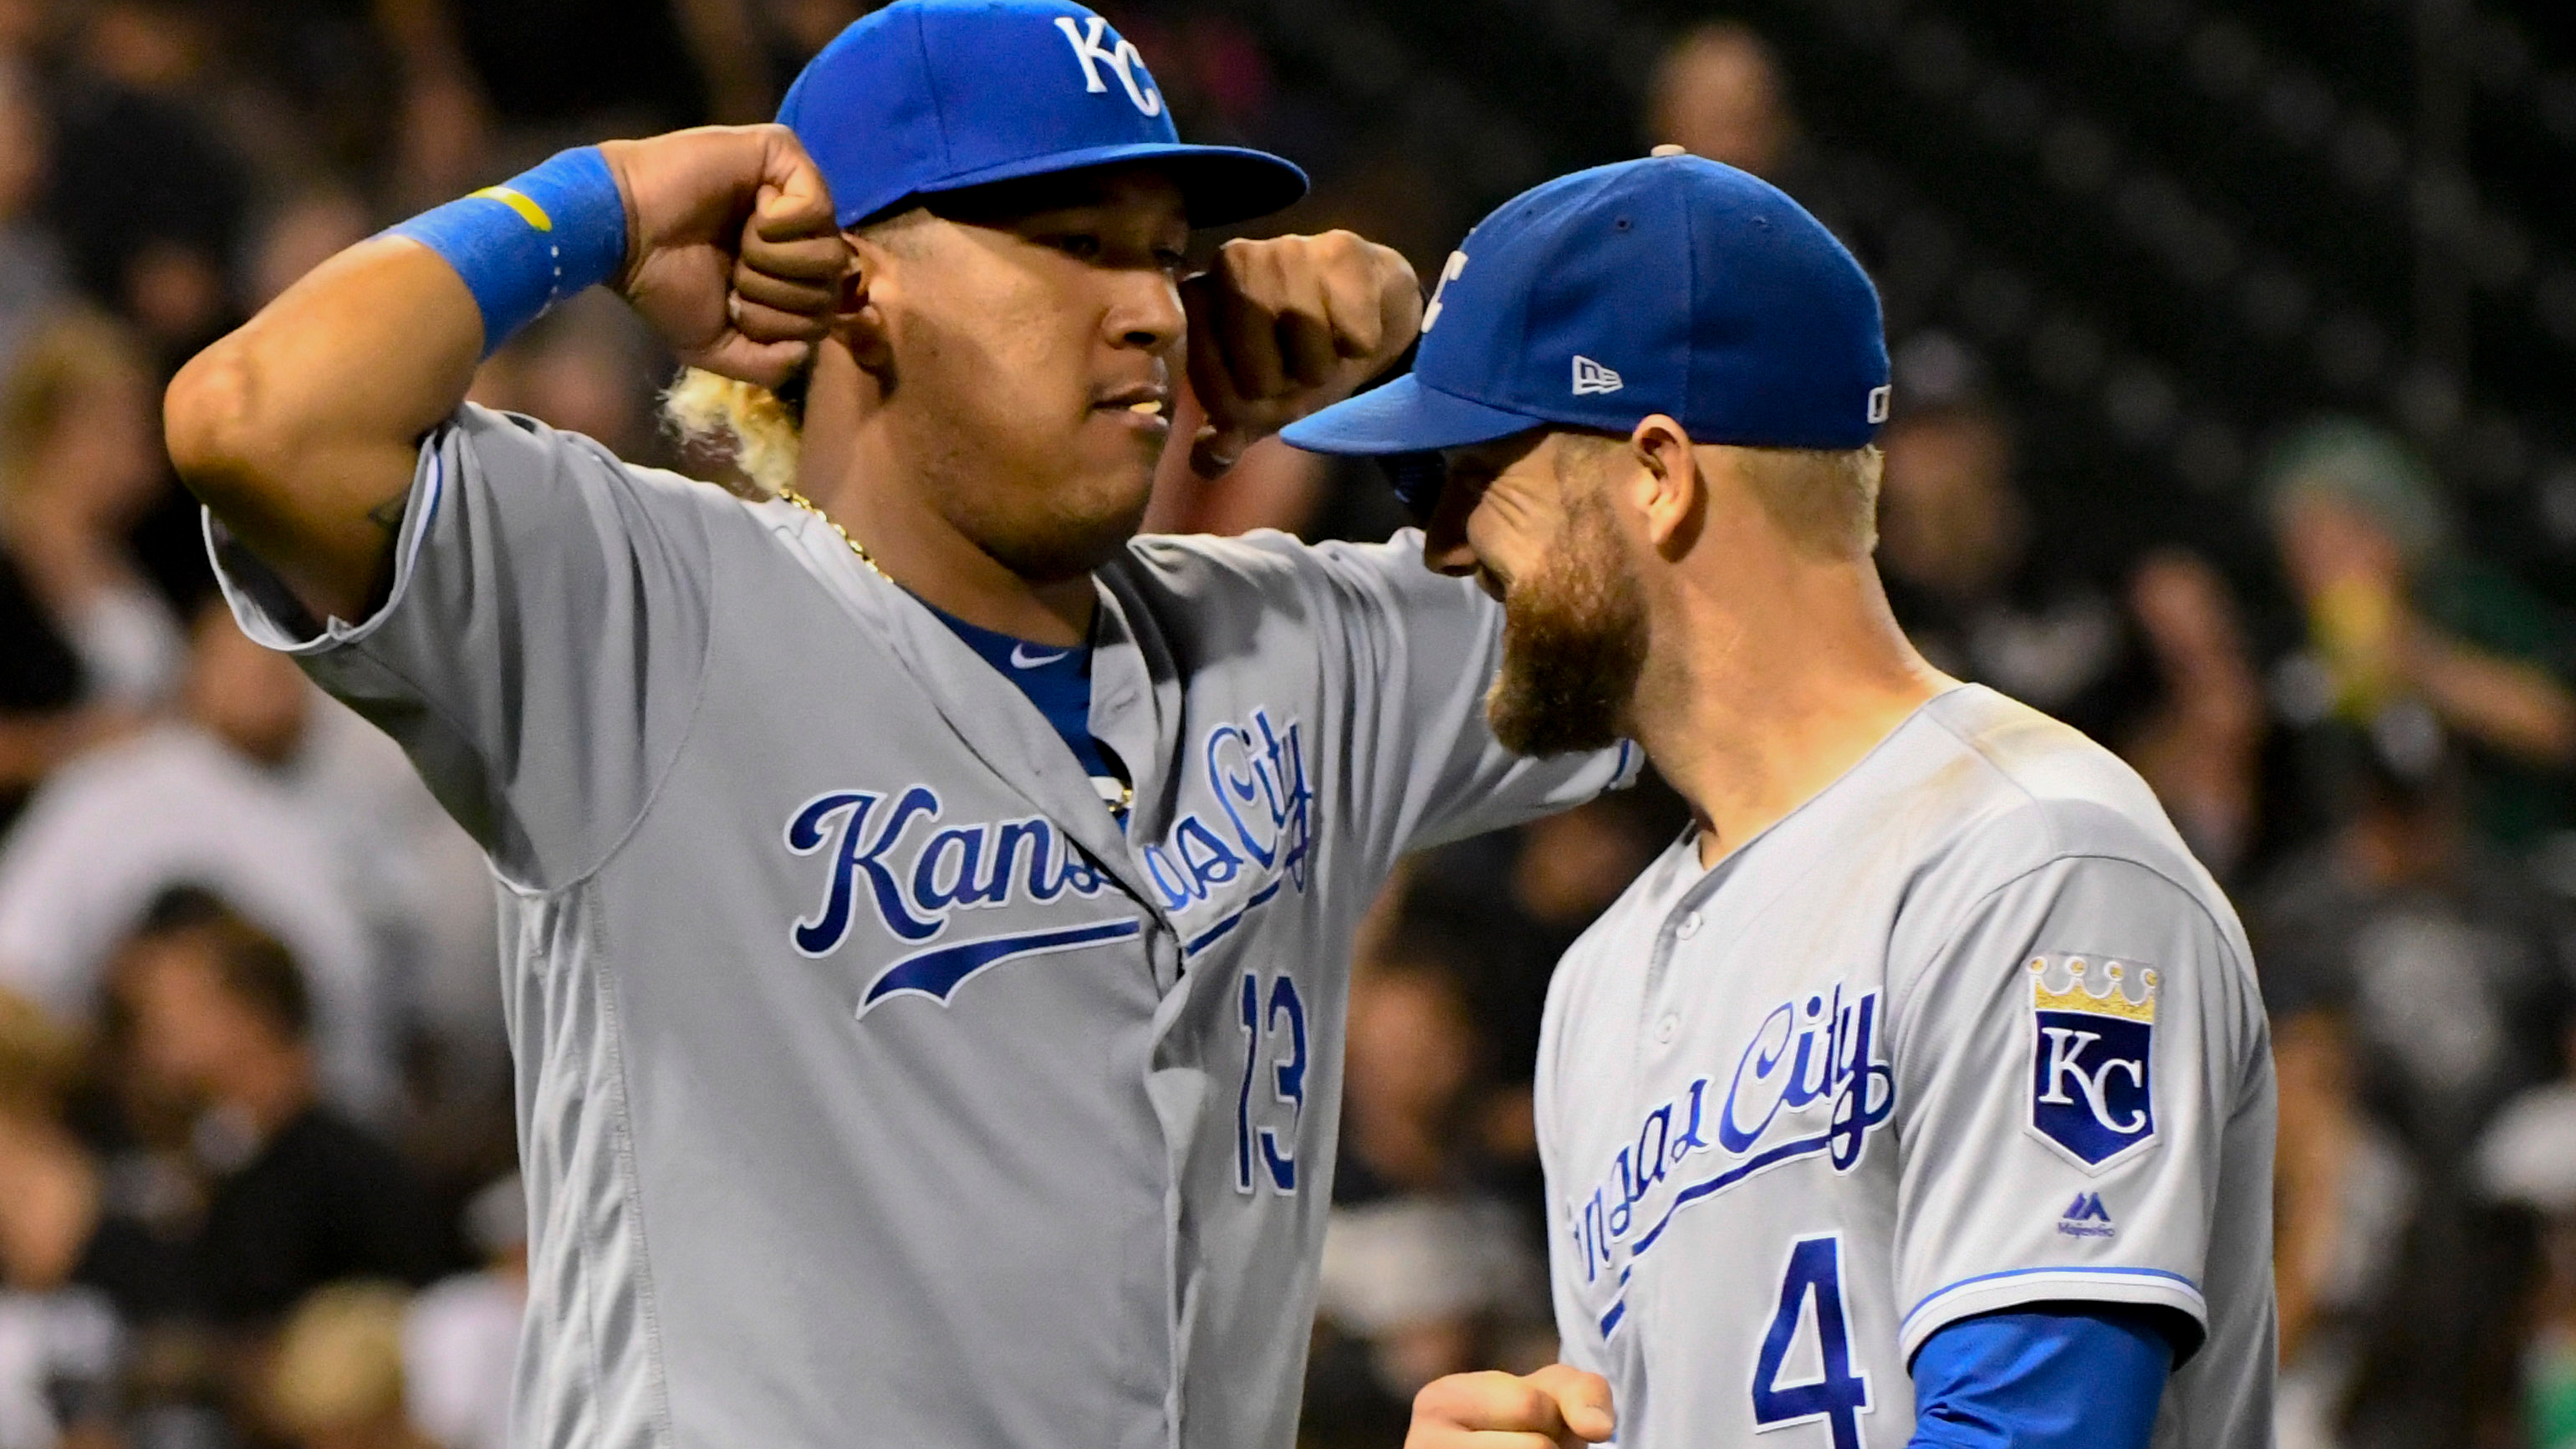 Royals reinstate Perez and Gordon, place Grimm on disabled list